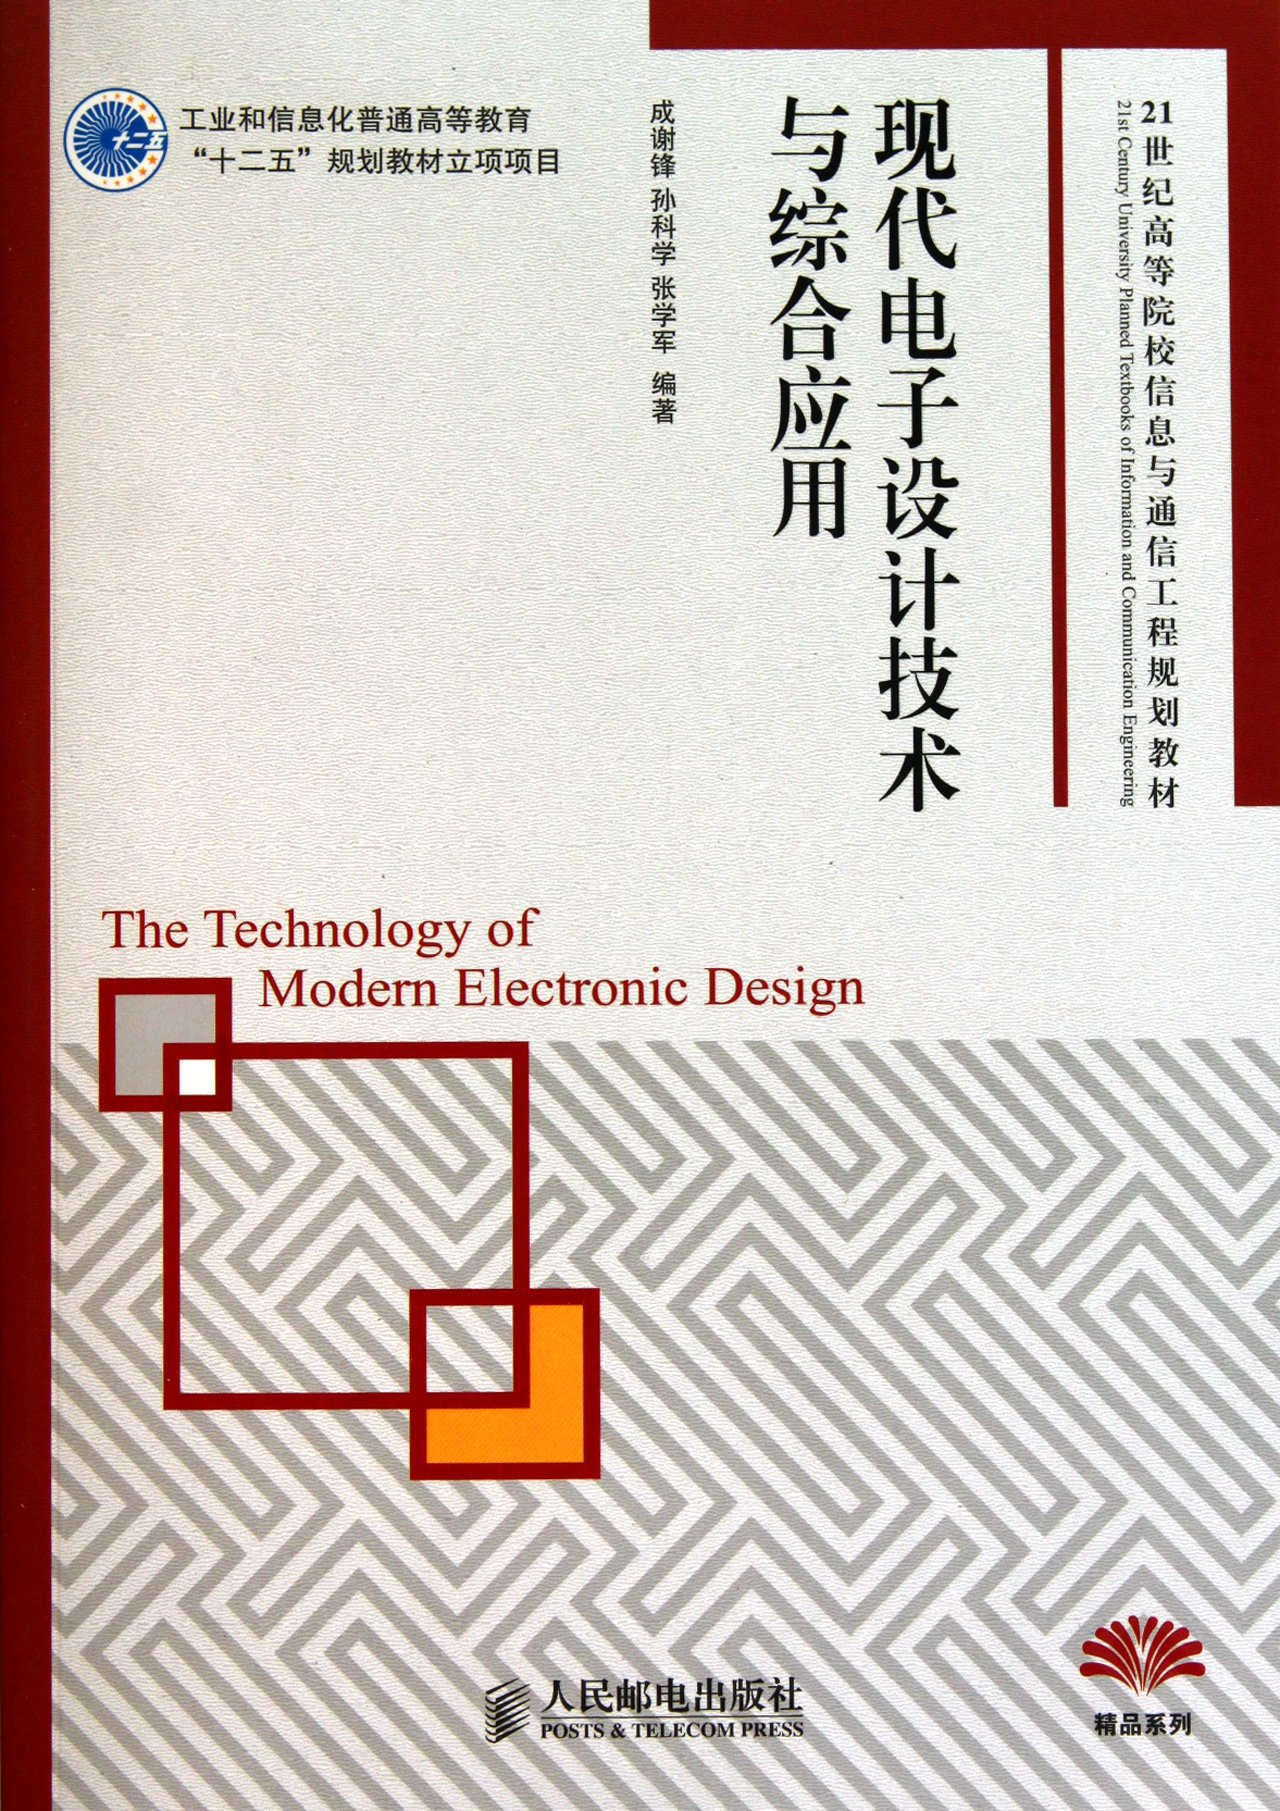 The Design Technology and Applications for Modern Electronic (12th Five-Year Plan textbook Project for Industry and Information High Vocational College) (Undergraduate) (Chinese Edition) ebook